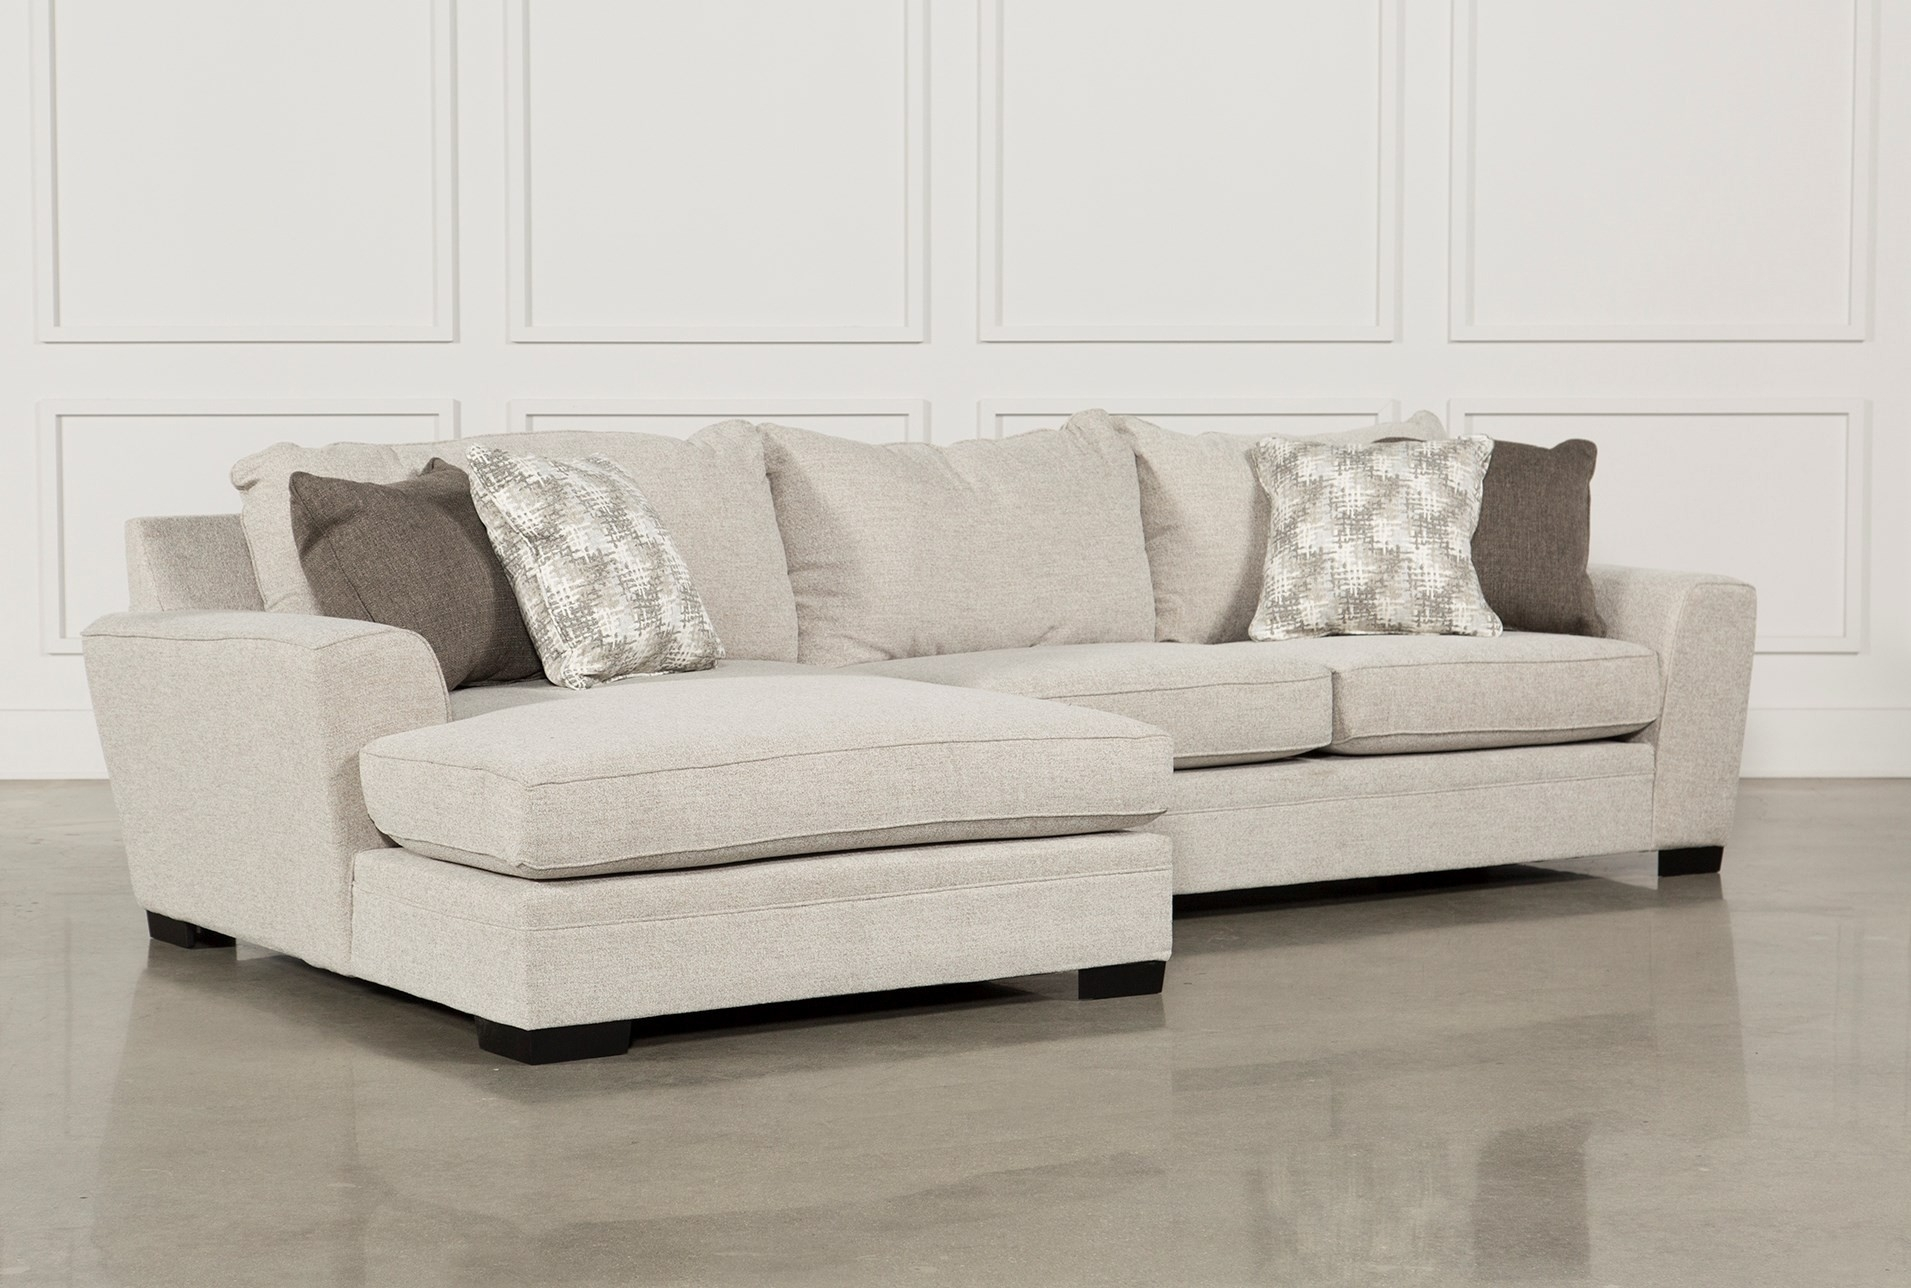 Living Spaces Sectional Sofas – Implantologiabogota (View 7 of 25)